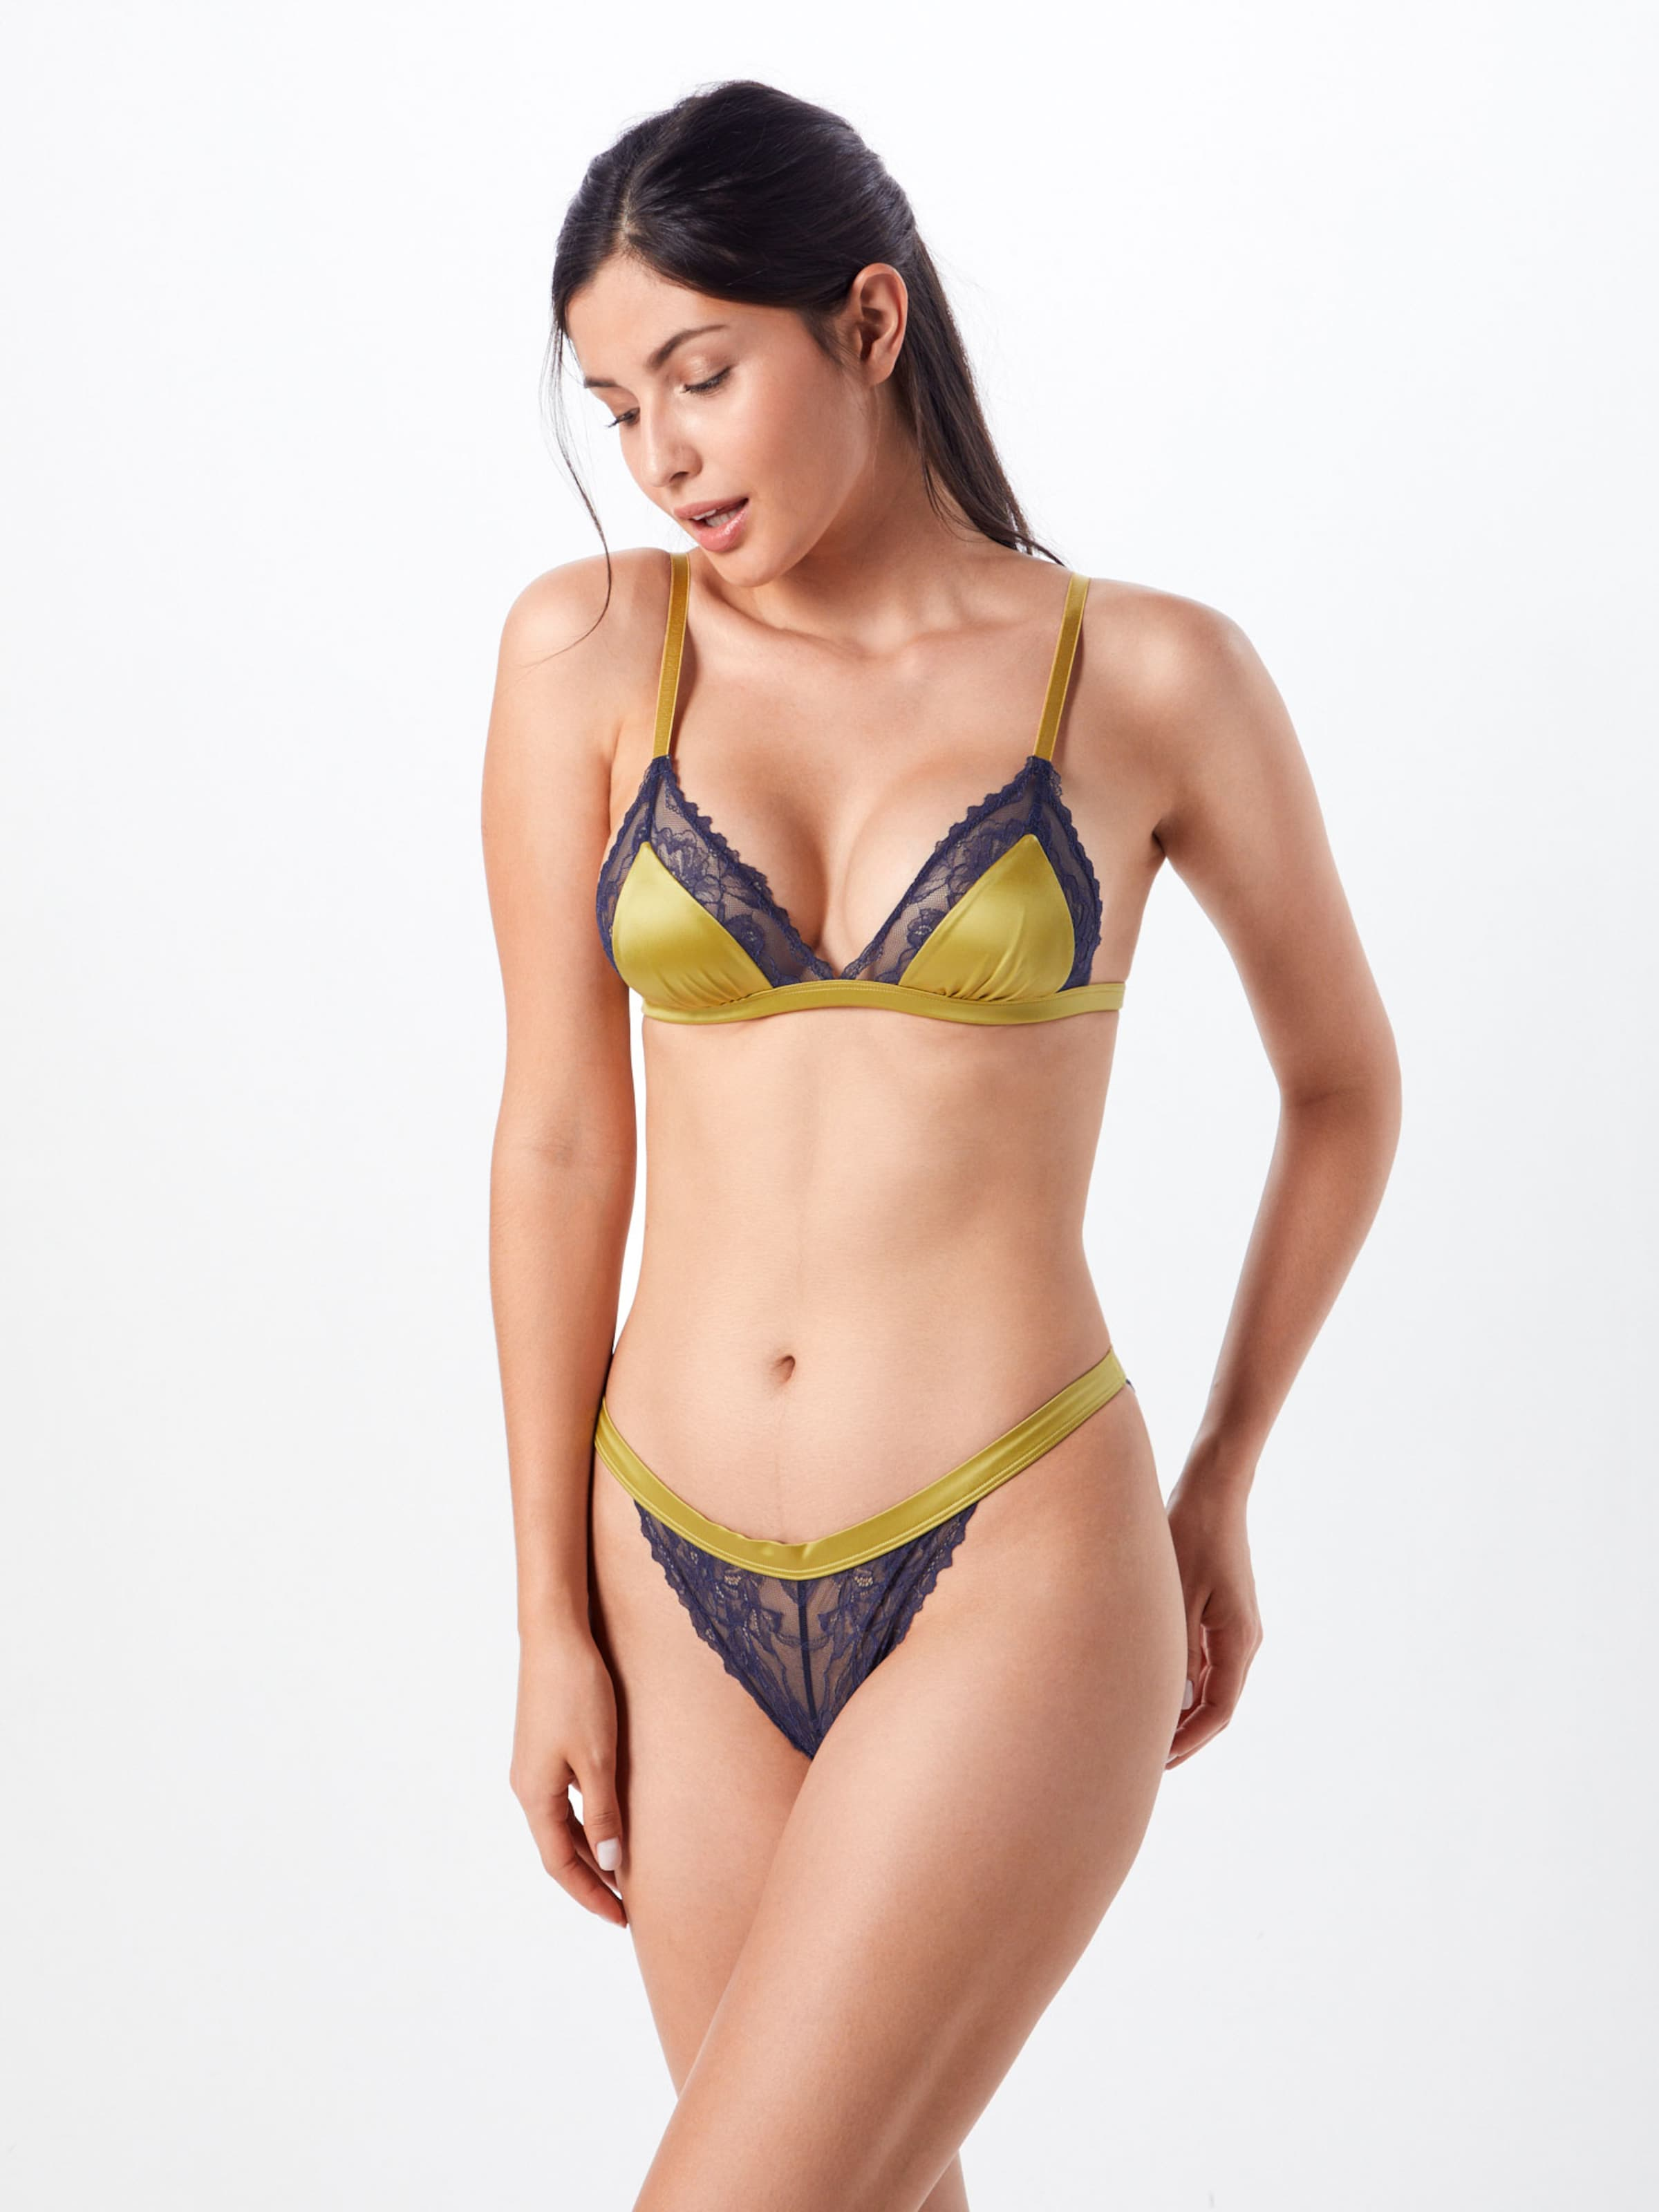 'poetry Lace' Fashion gorge Soutien Moutarde Mey En Ybfgy76